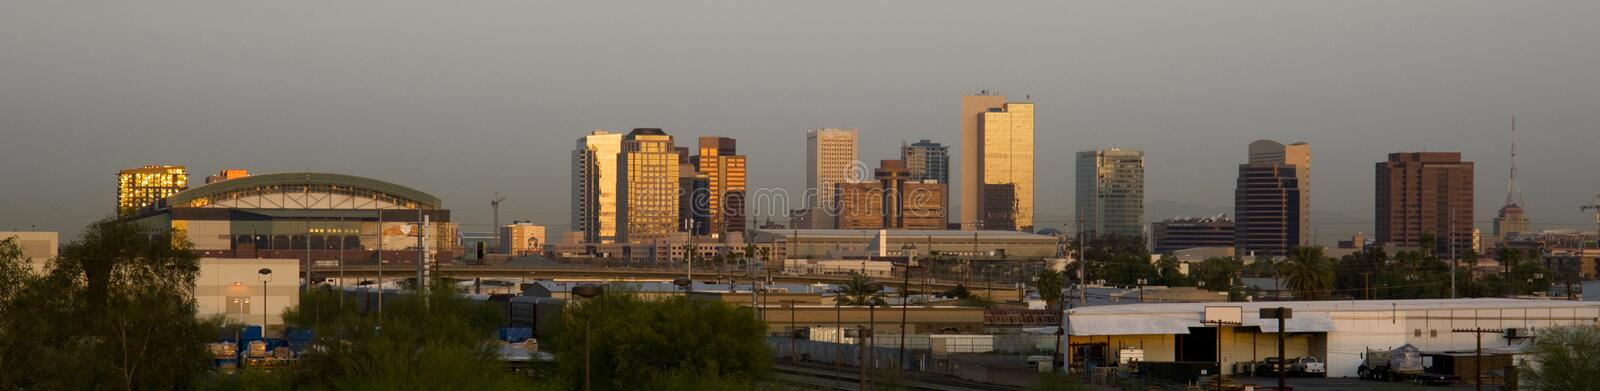 Buildings of Phoenix Arizona Skyline Before The Sun Rises. The Buildings and Landscape of Phoenix Arizona Skyline Before The Sun Rises stock photos